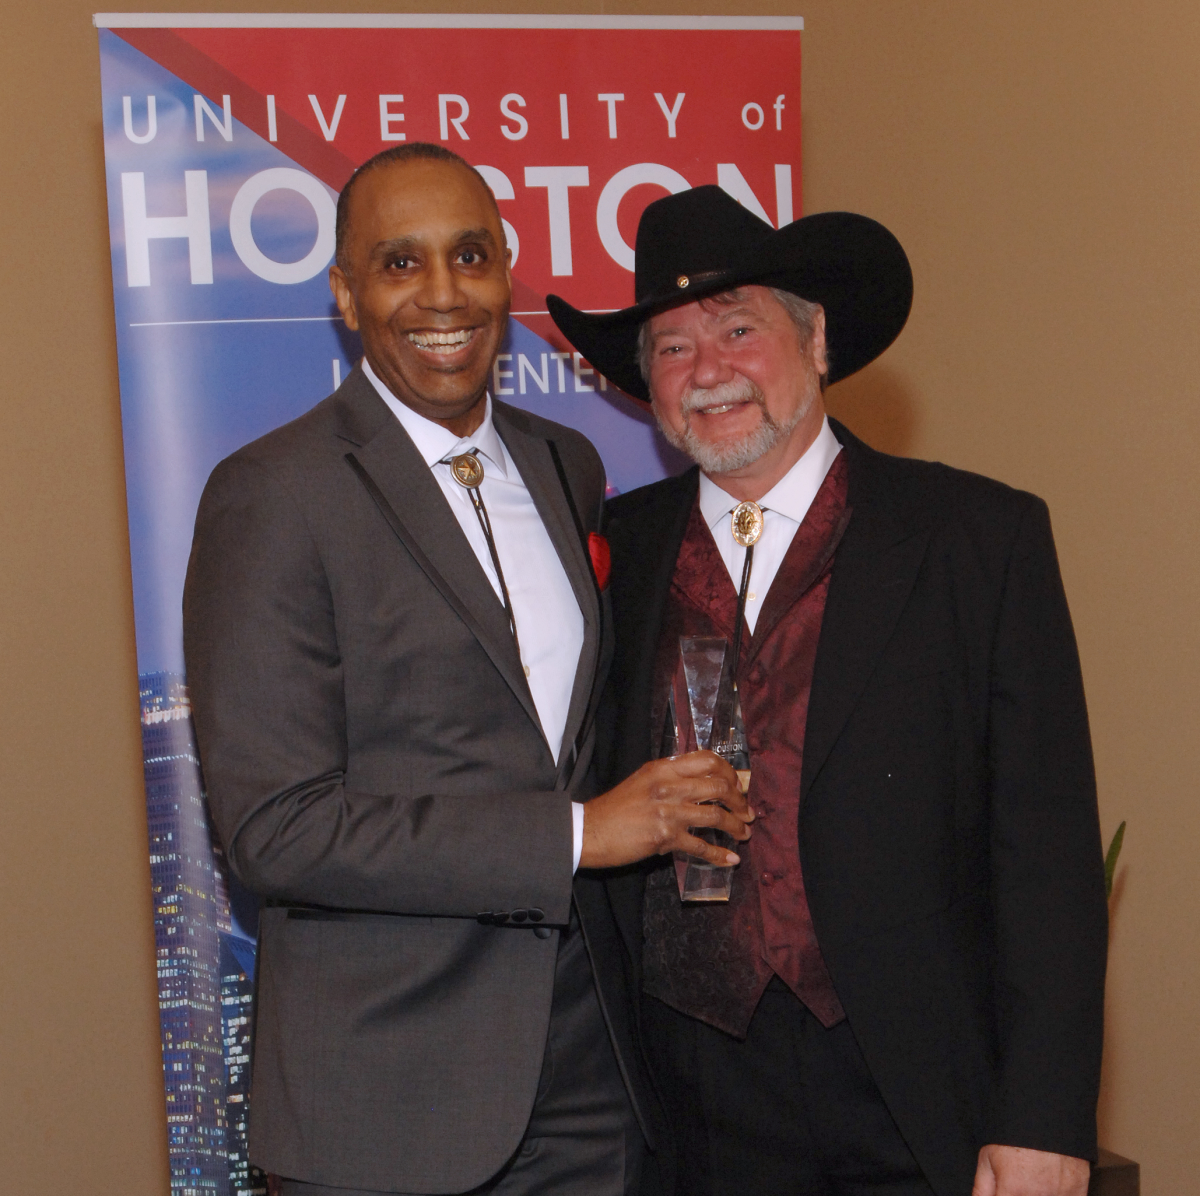 UH Law gala, April 2016, Dean Leonard Baynes, Jim Roach